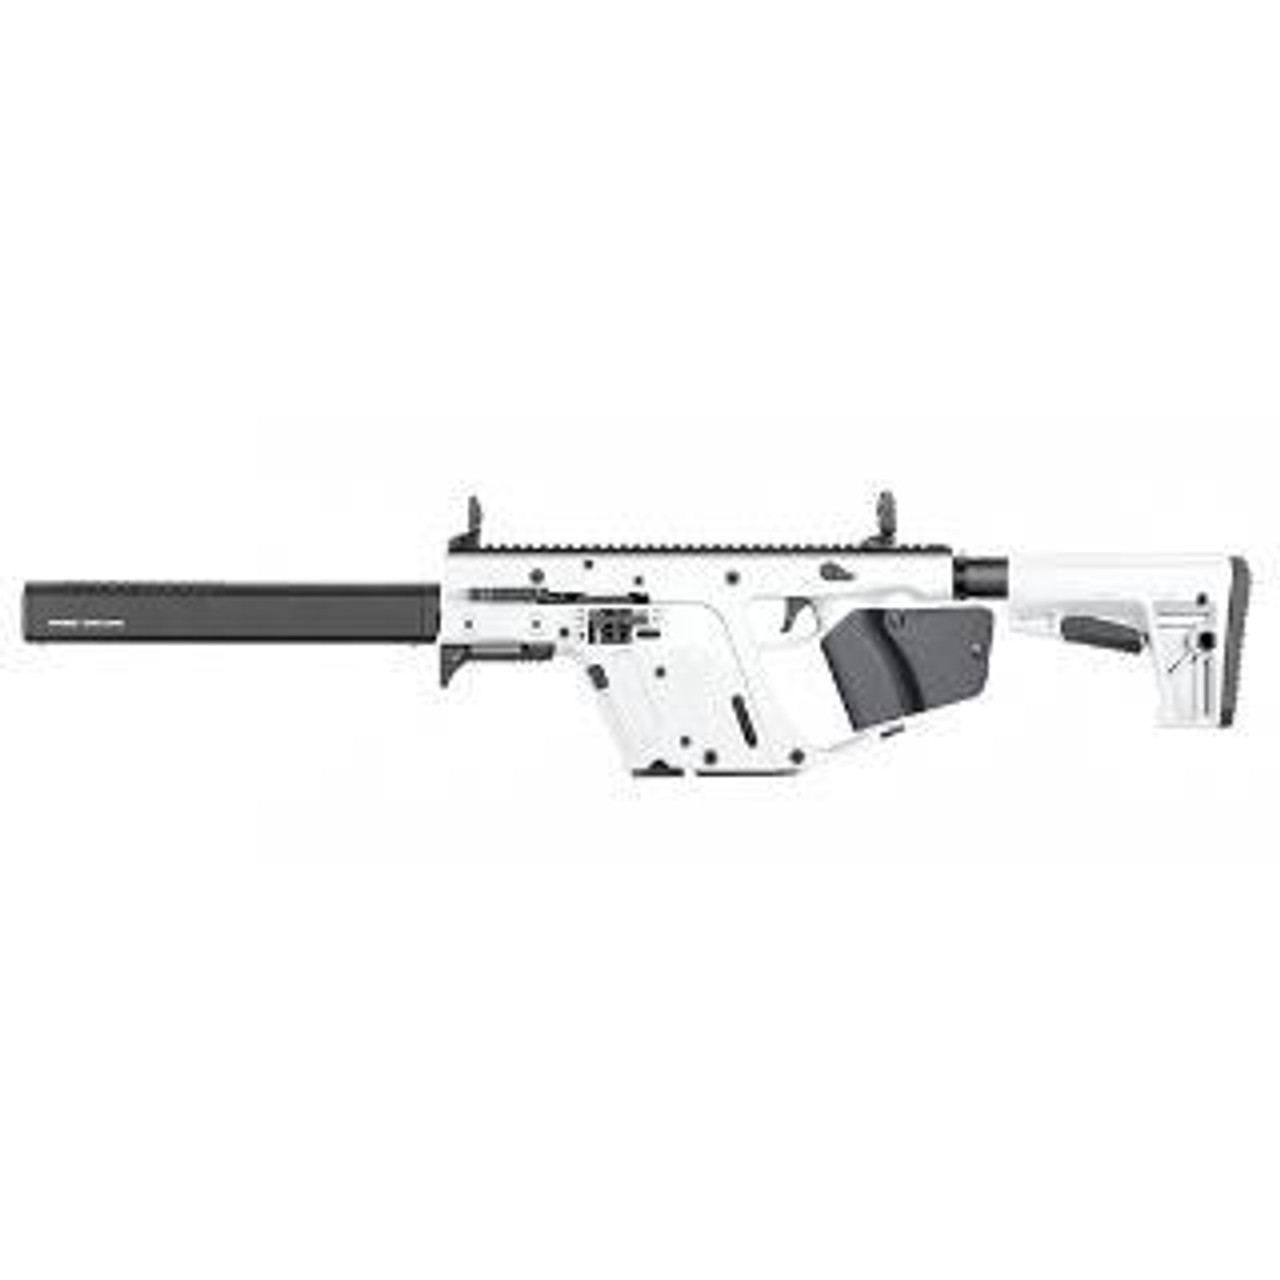 Kriss Vector 9mm, Alpine White - California Legal